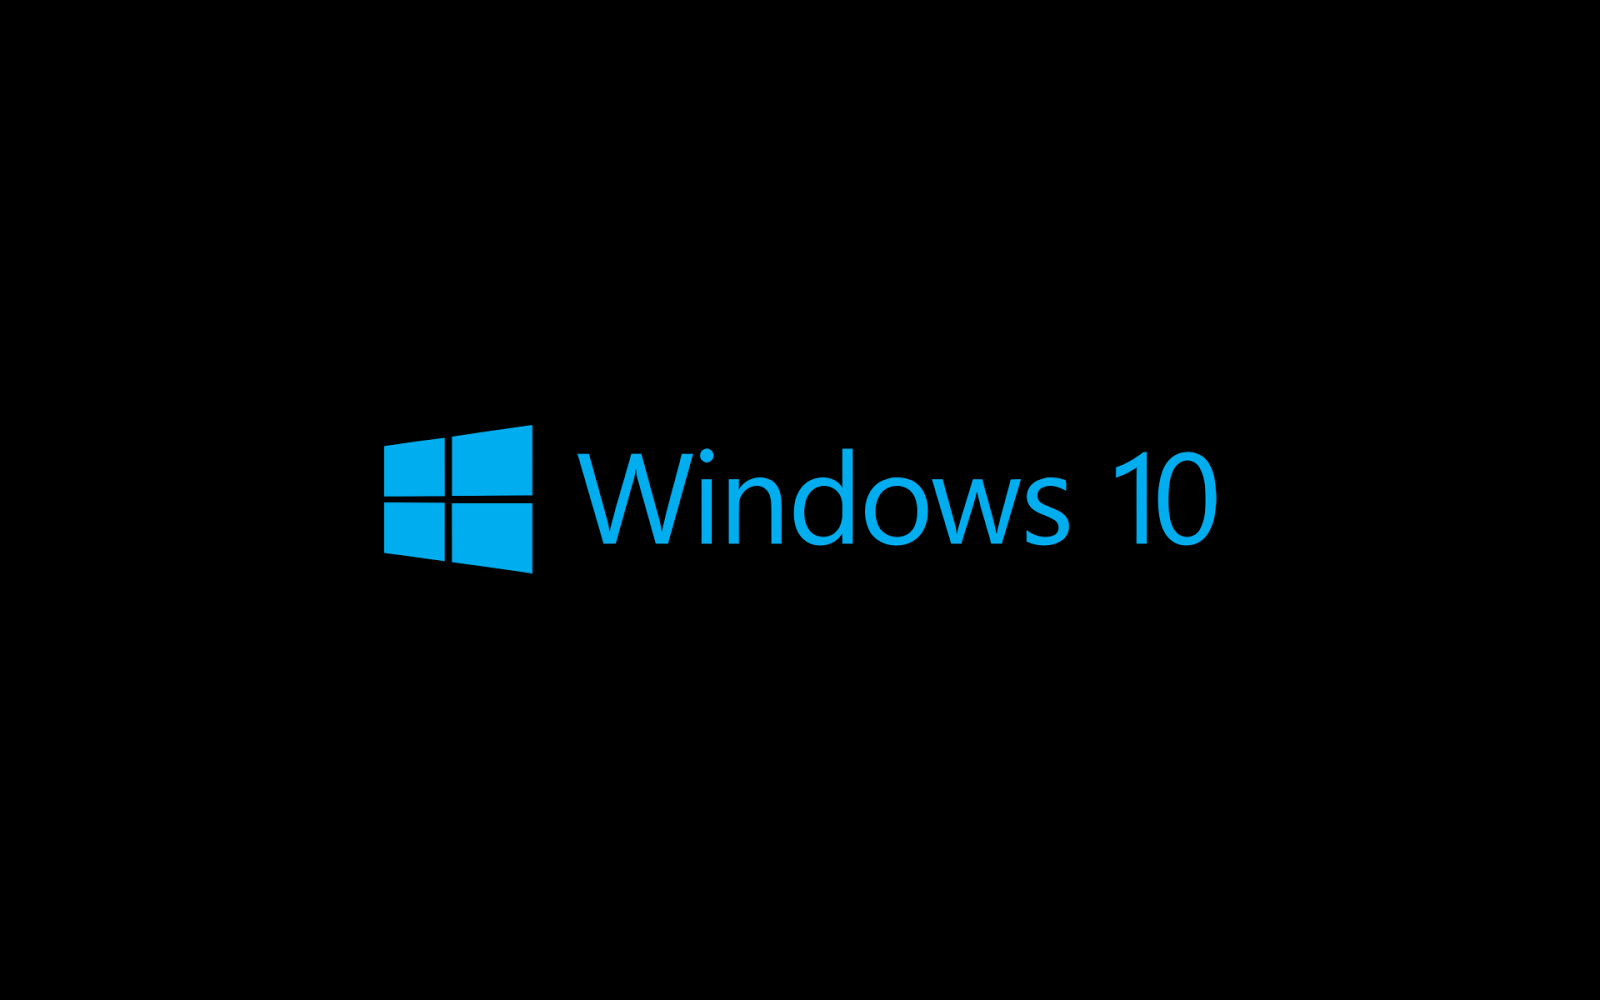 Schwarzen Windows 10 wallpaper